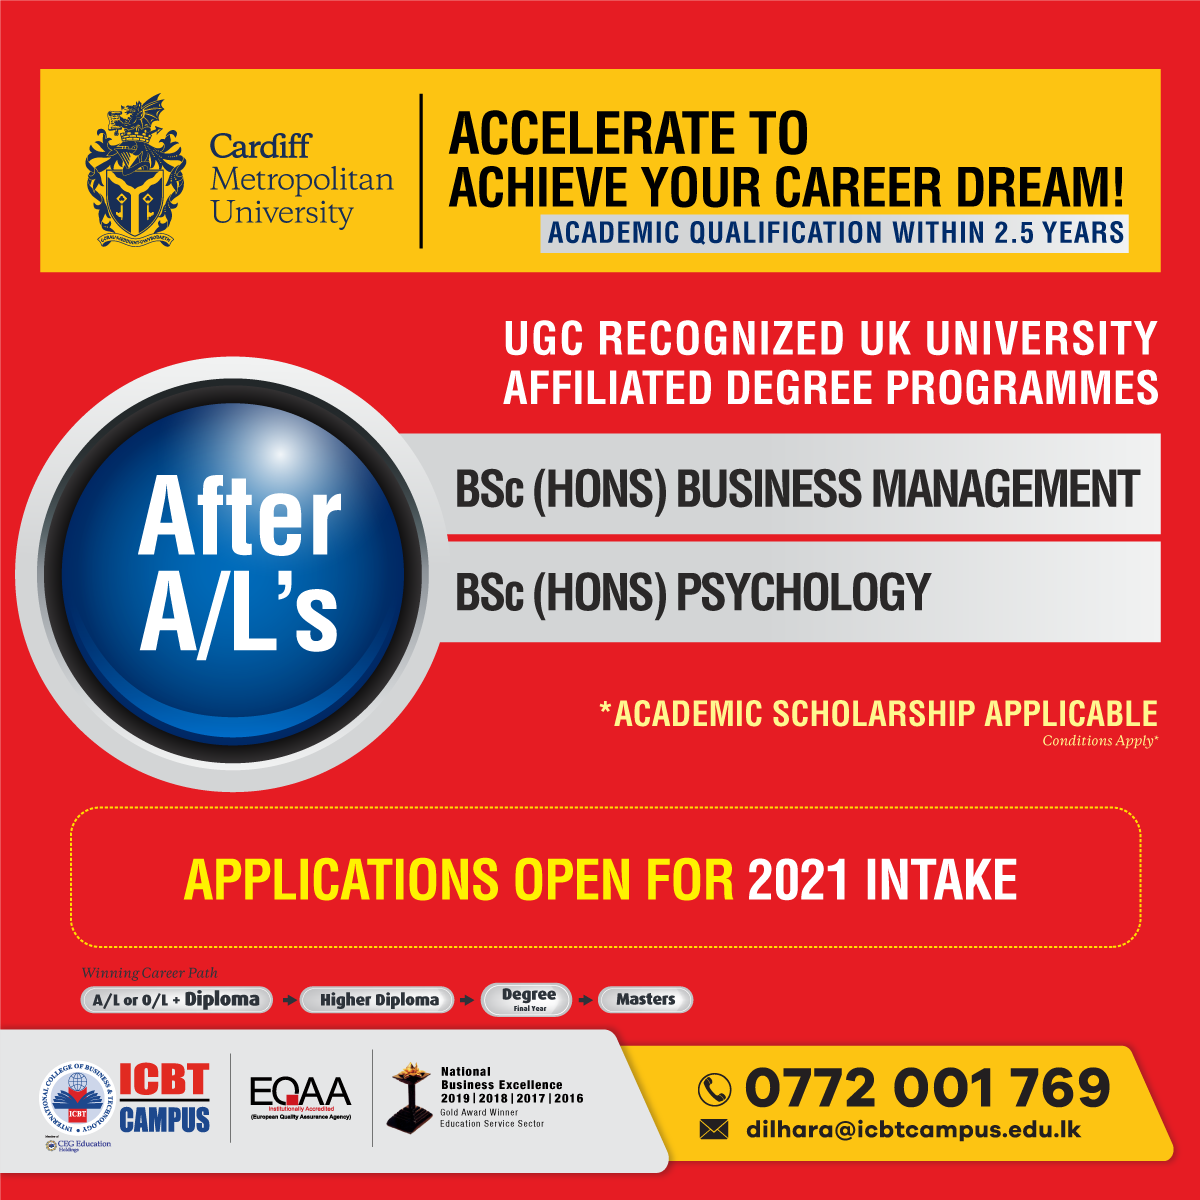 After A/Ls'-Accelerate To Achieve Your Career Dream!